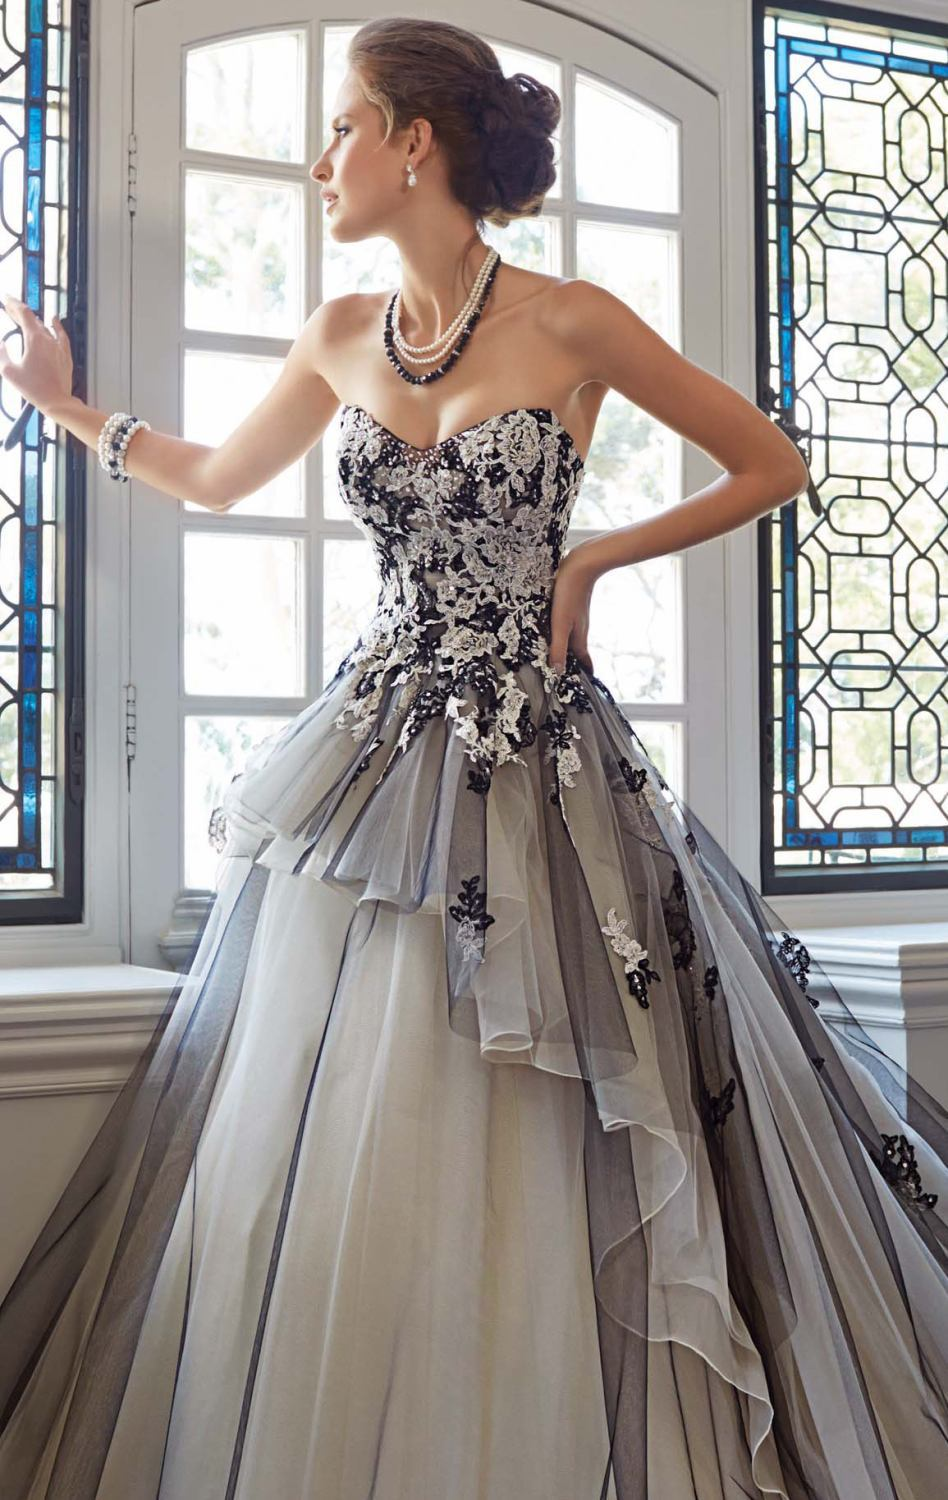 2015 New Formal White And Black Lace Ball Gown Elegant